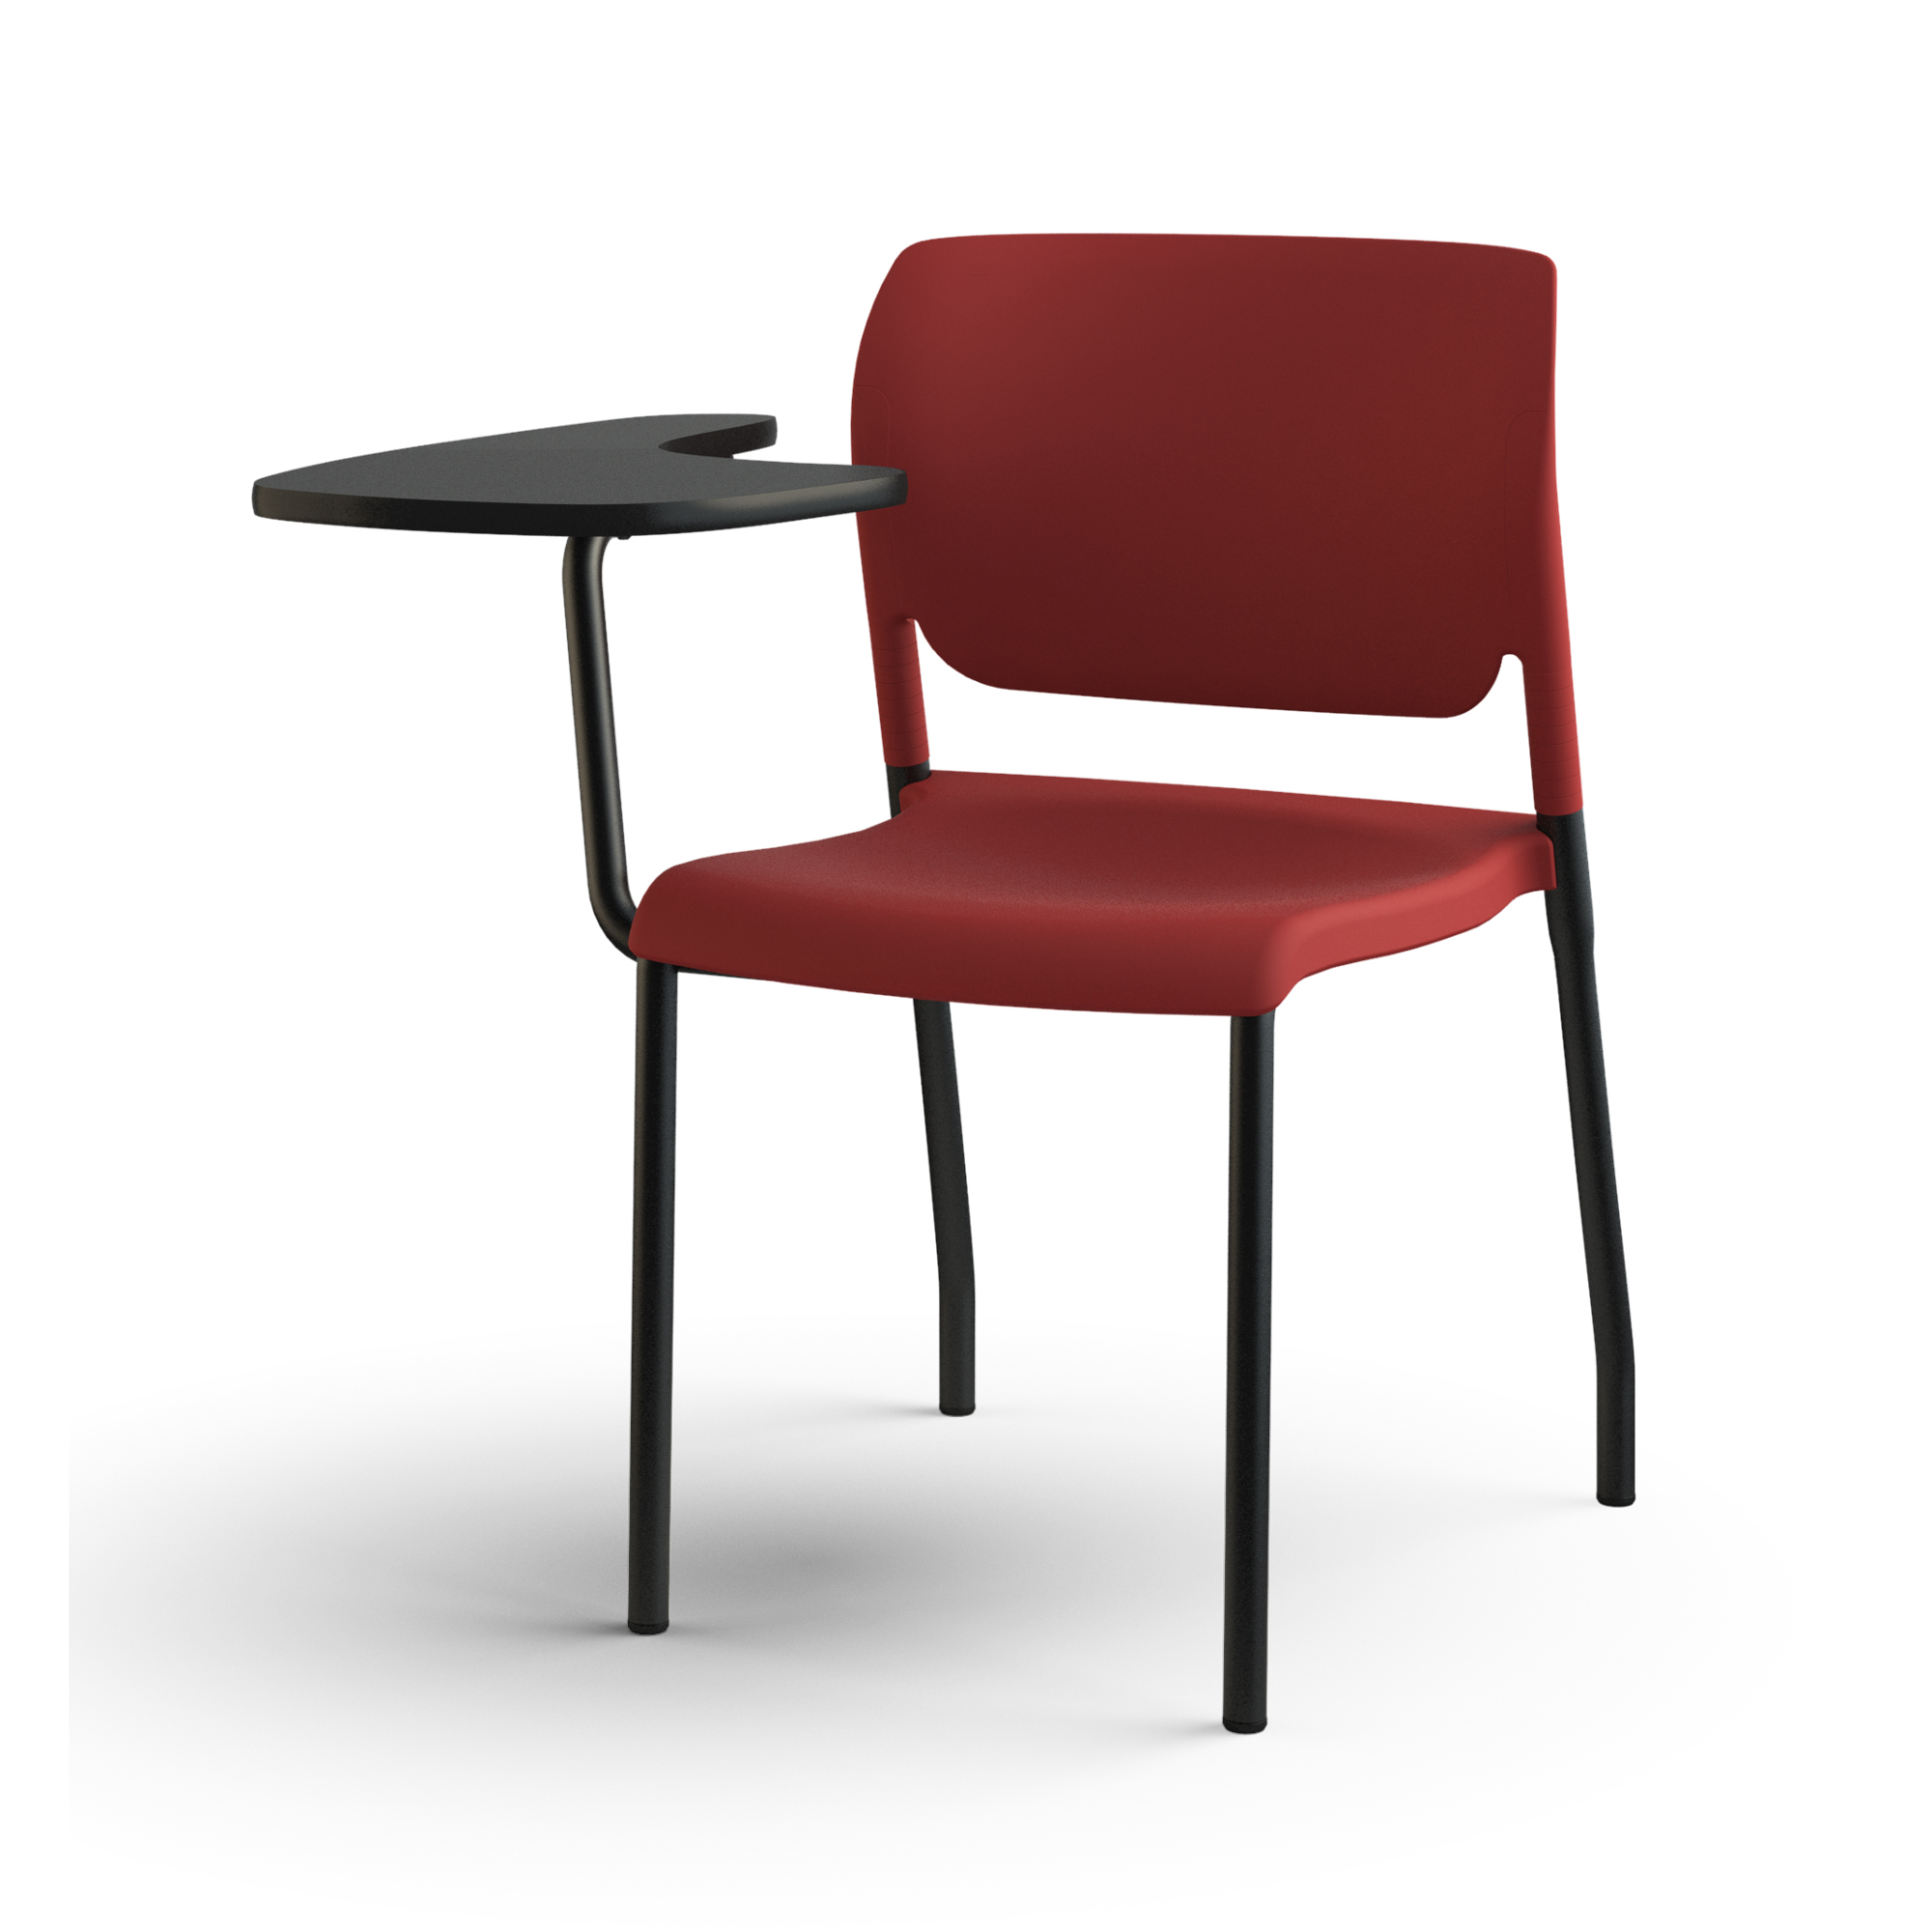 inflex multipurpose chair tablet red 3qfront gallery